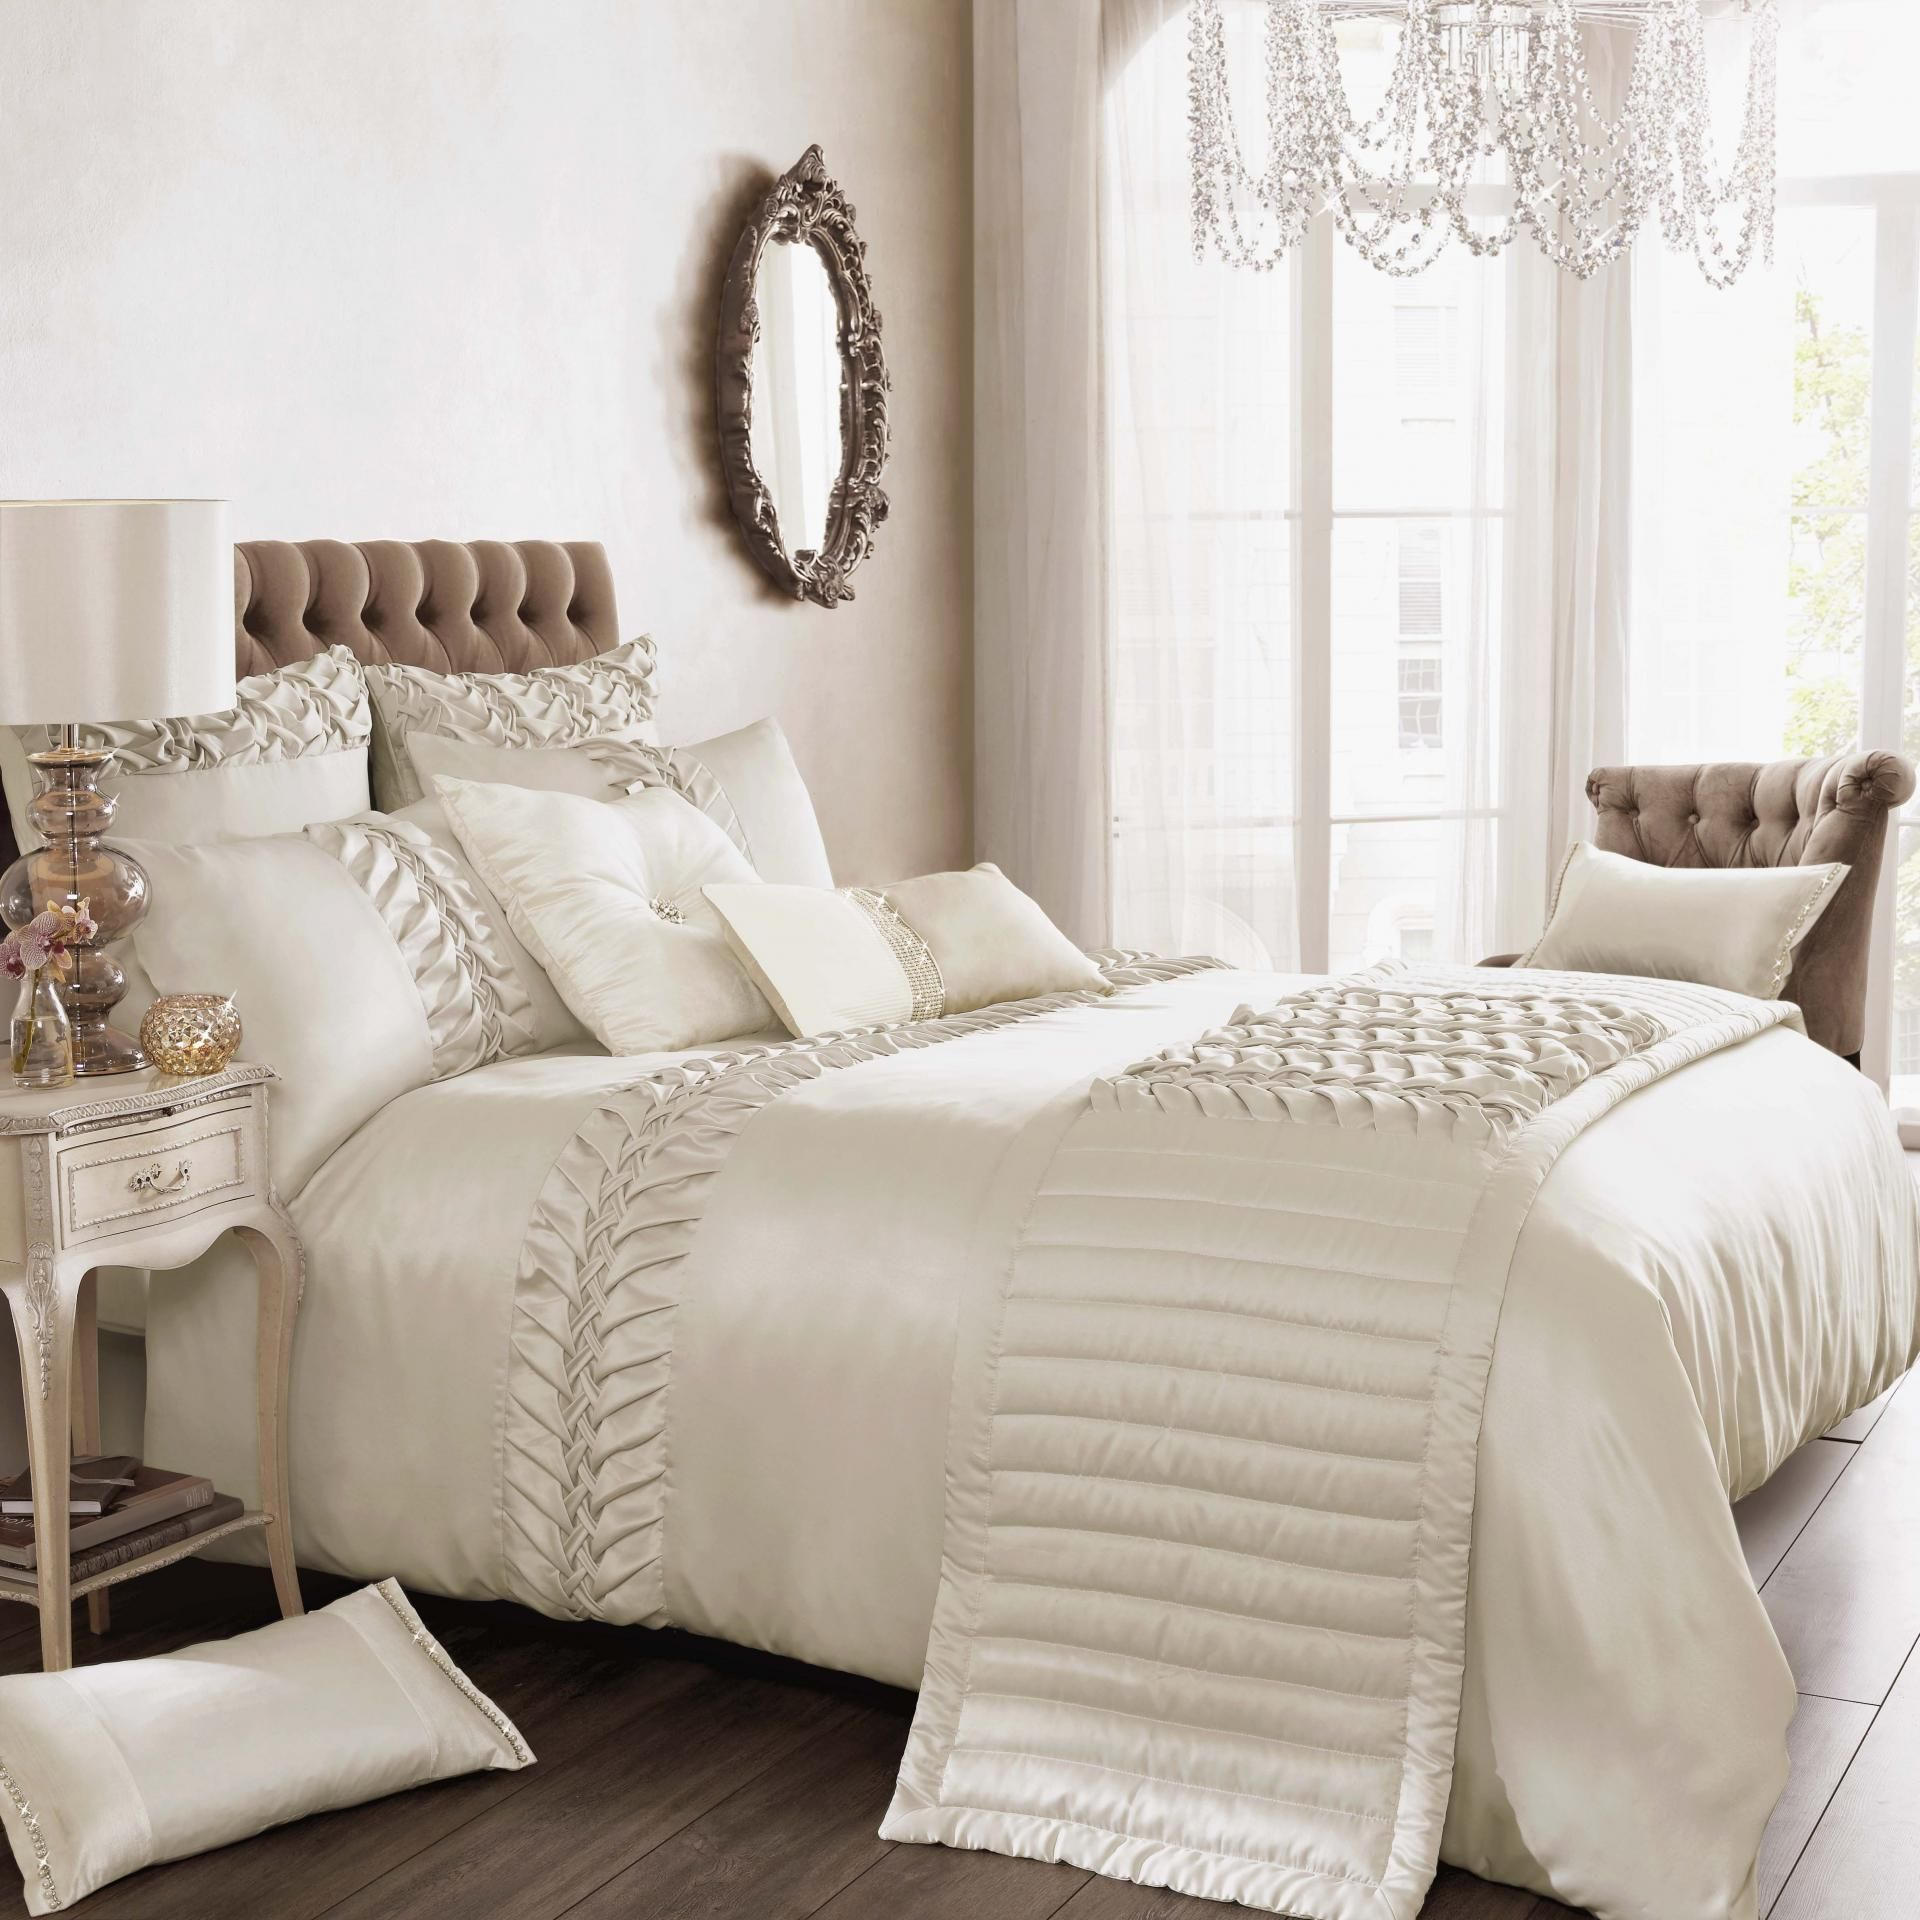 Things To Keep In Mind While Buying Luxury Bedding Sets Bed Linens Luxury Luxury White Bedding Luxury Bedding